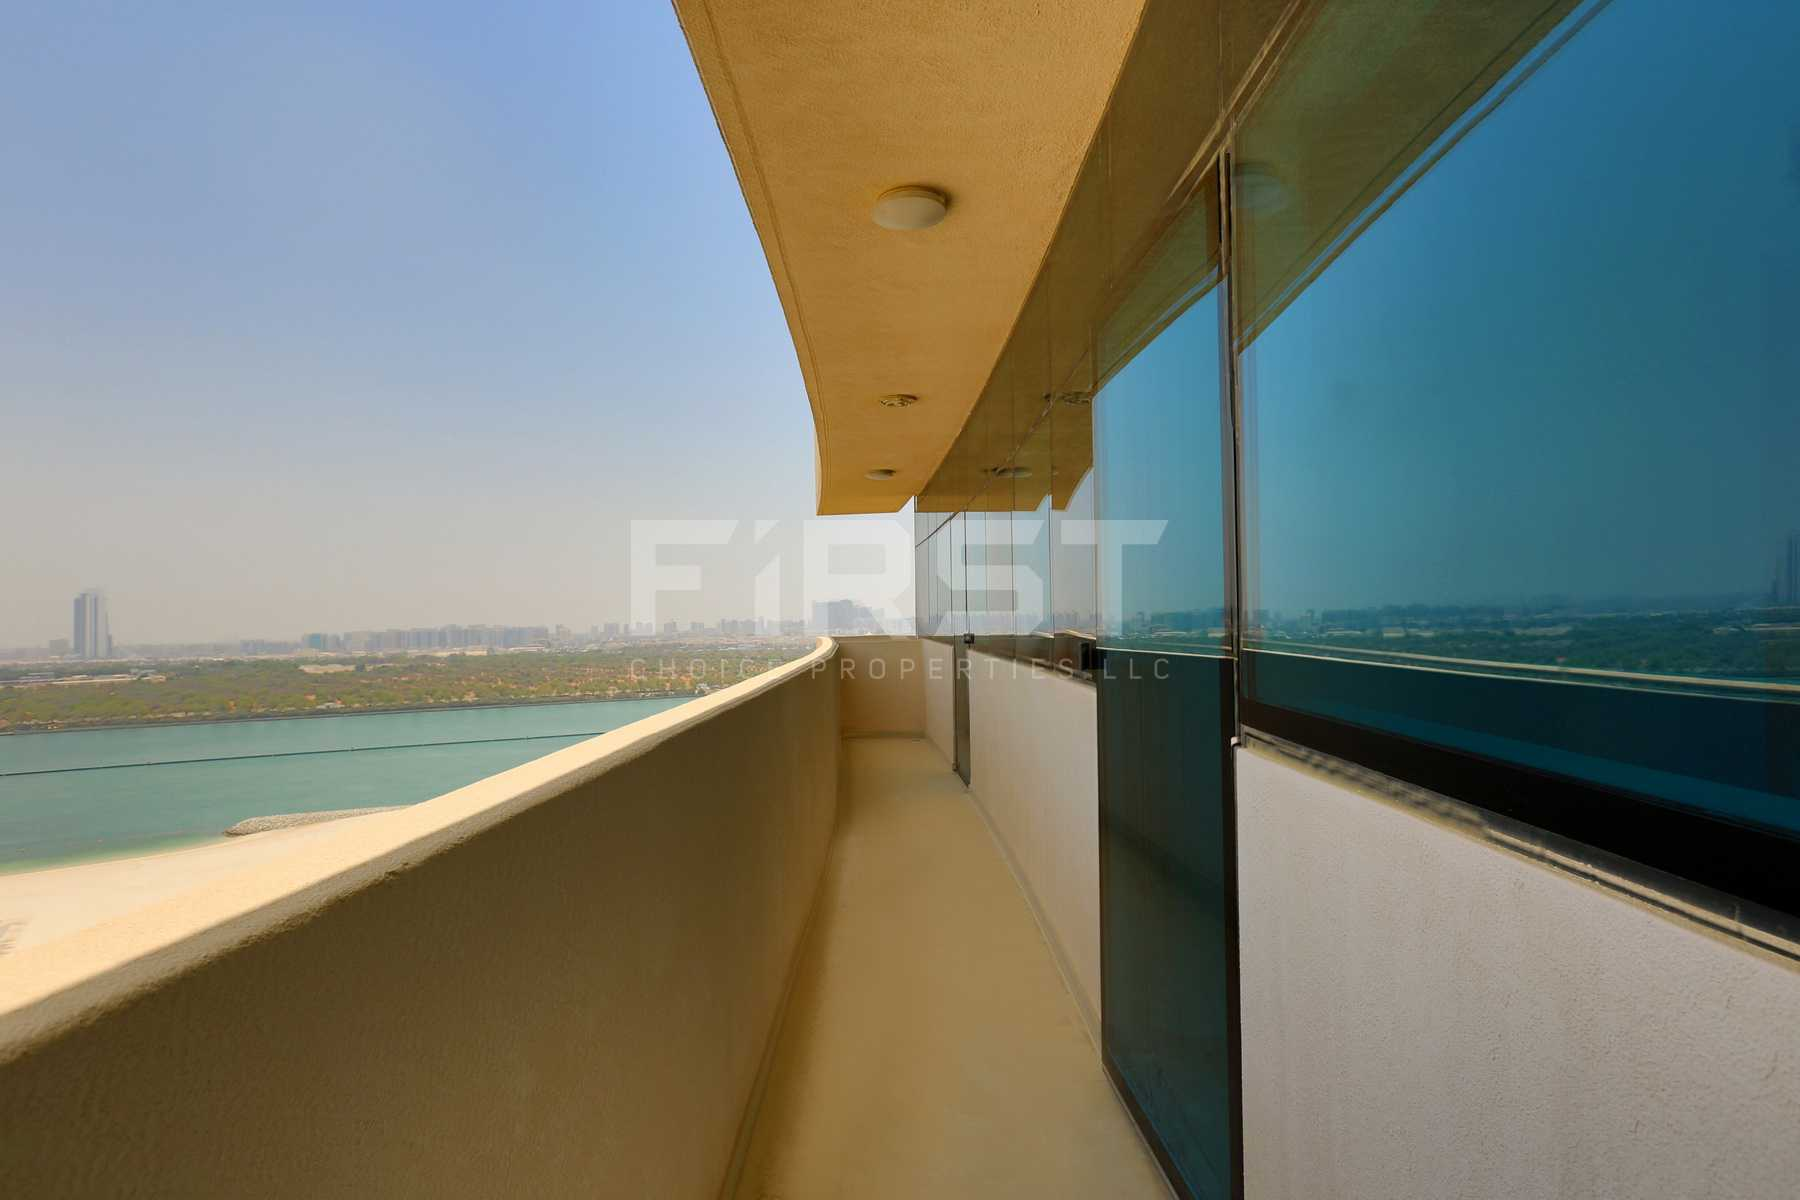 Internal Photo of 2 Bedroom Apartment in Marina bay by Damac Najmat Abu Dhabi Al Reem Island Abu Dhabi UAE (30).jpg